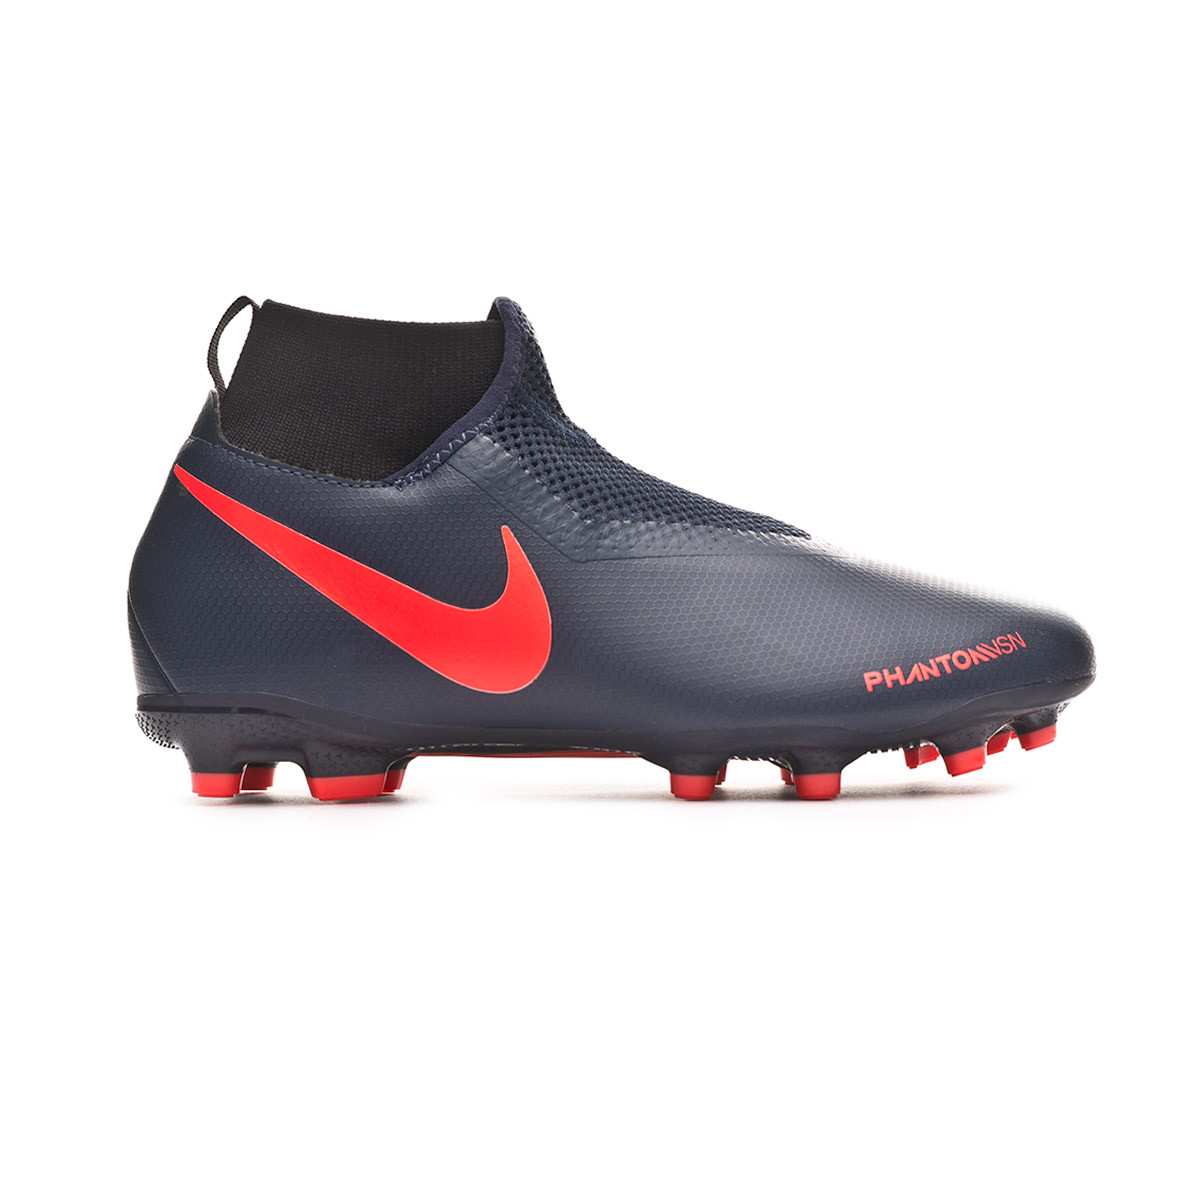 entrada Novia madre  Football Boots Nike Kids Phantom Vision Academy DF FG/MG Obsidian-Bright  crimson-Black - Football store Fútbol Emotion